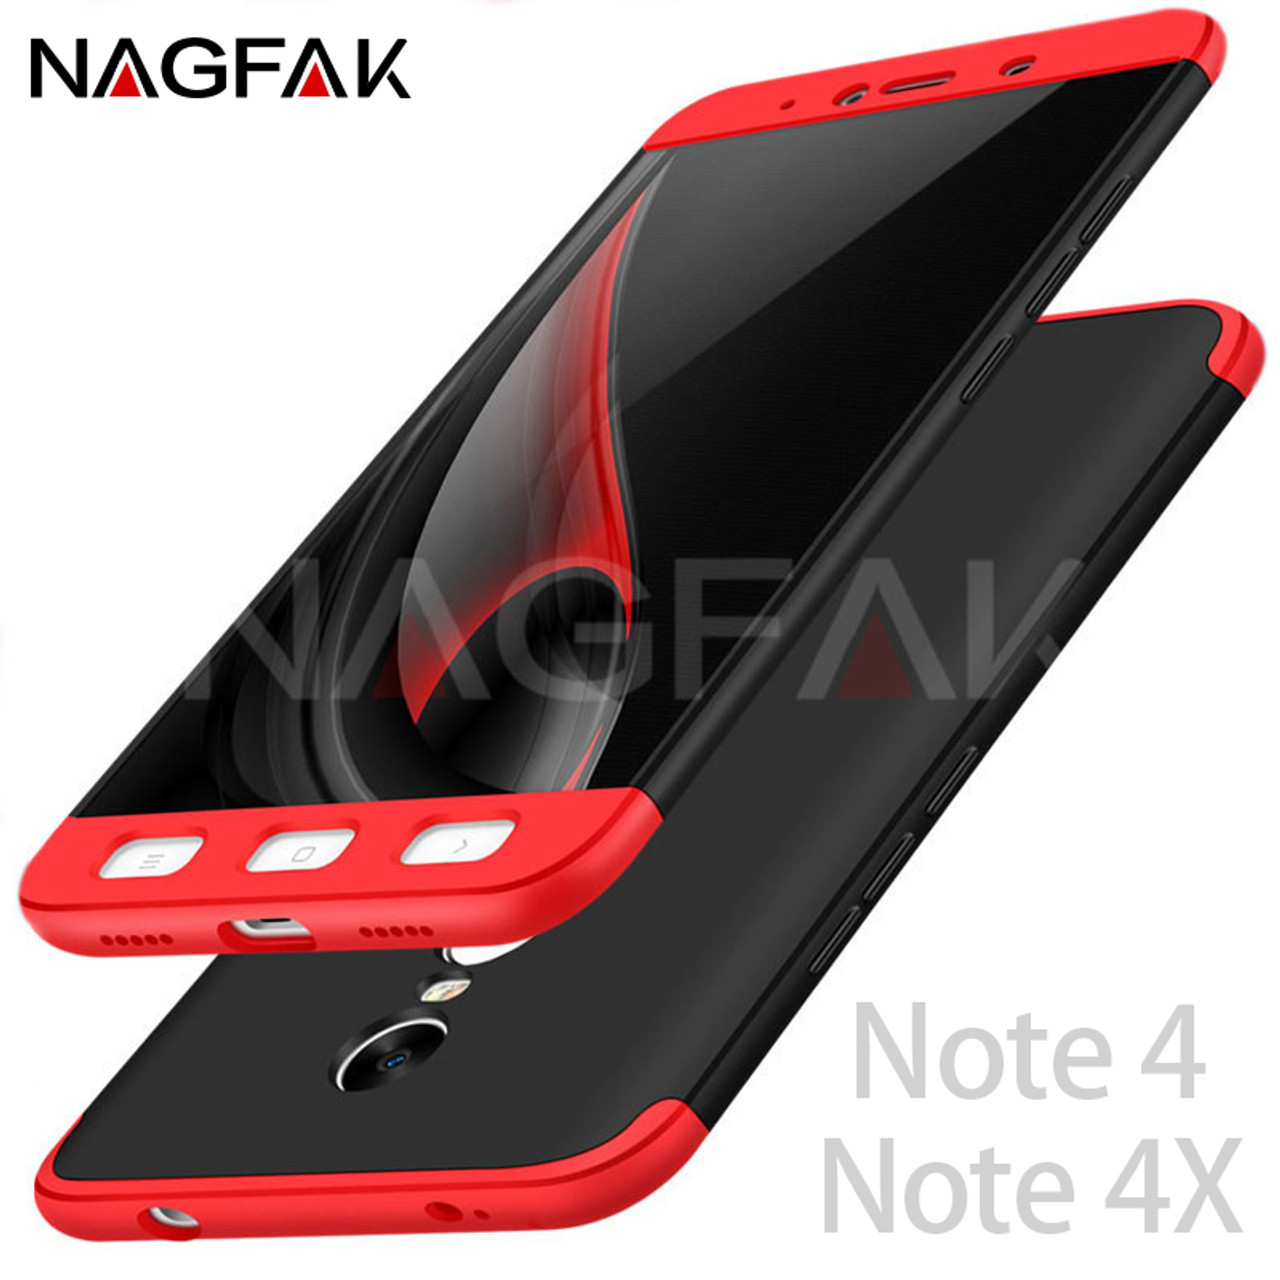 meet d28b1 dc653 NAGFAK Luxury Protective Case For Xiaomi Redmi Note 4 Note 4X Phone Shell  360 Degree Cases Note4 Global Version Phone Case Capa